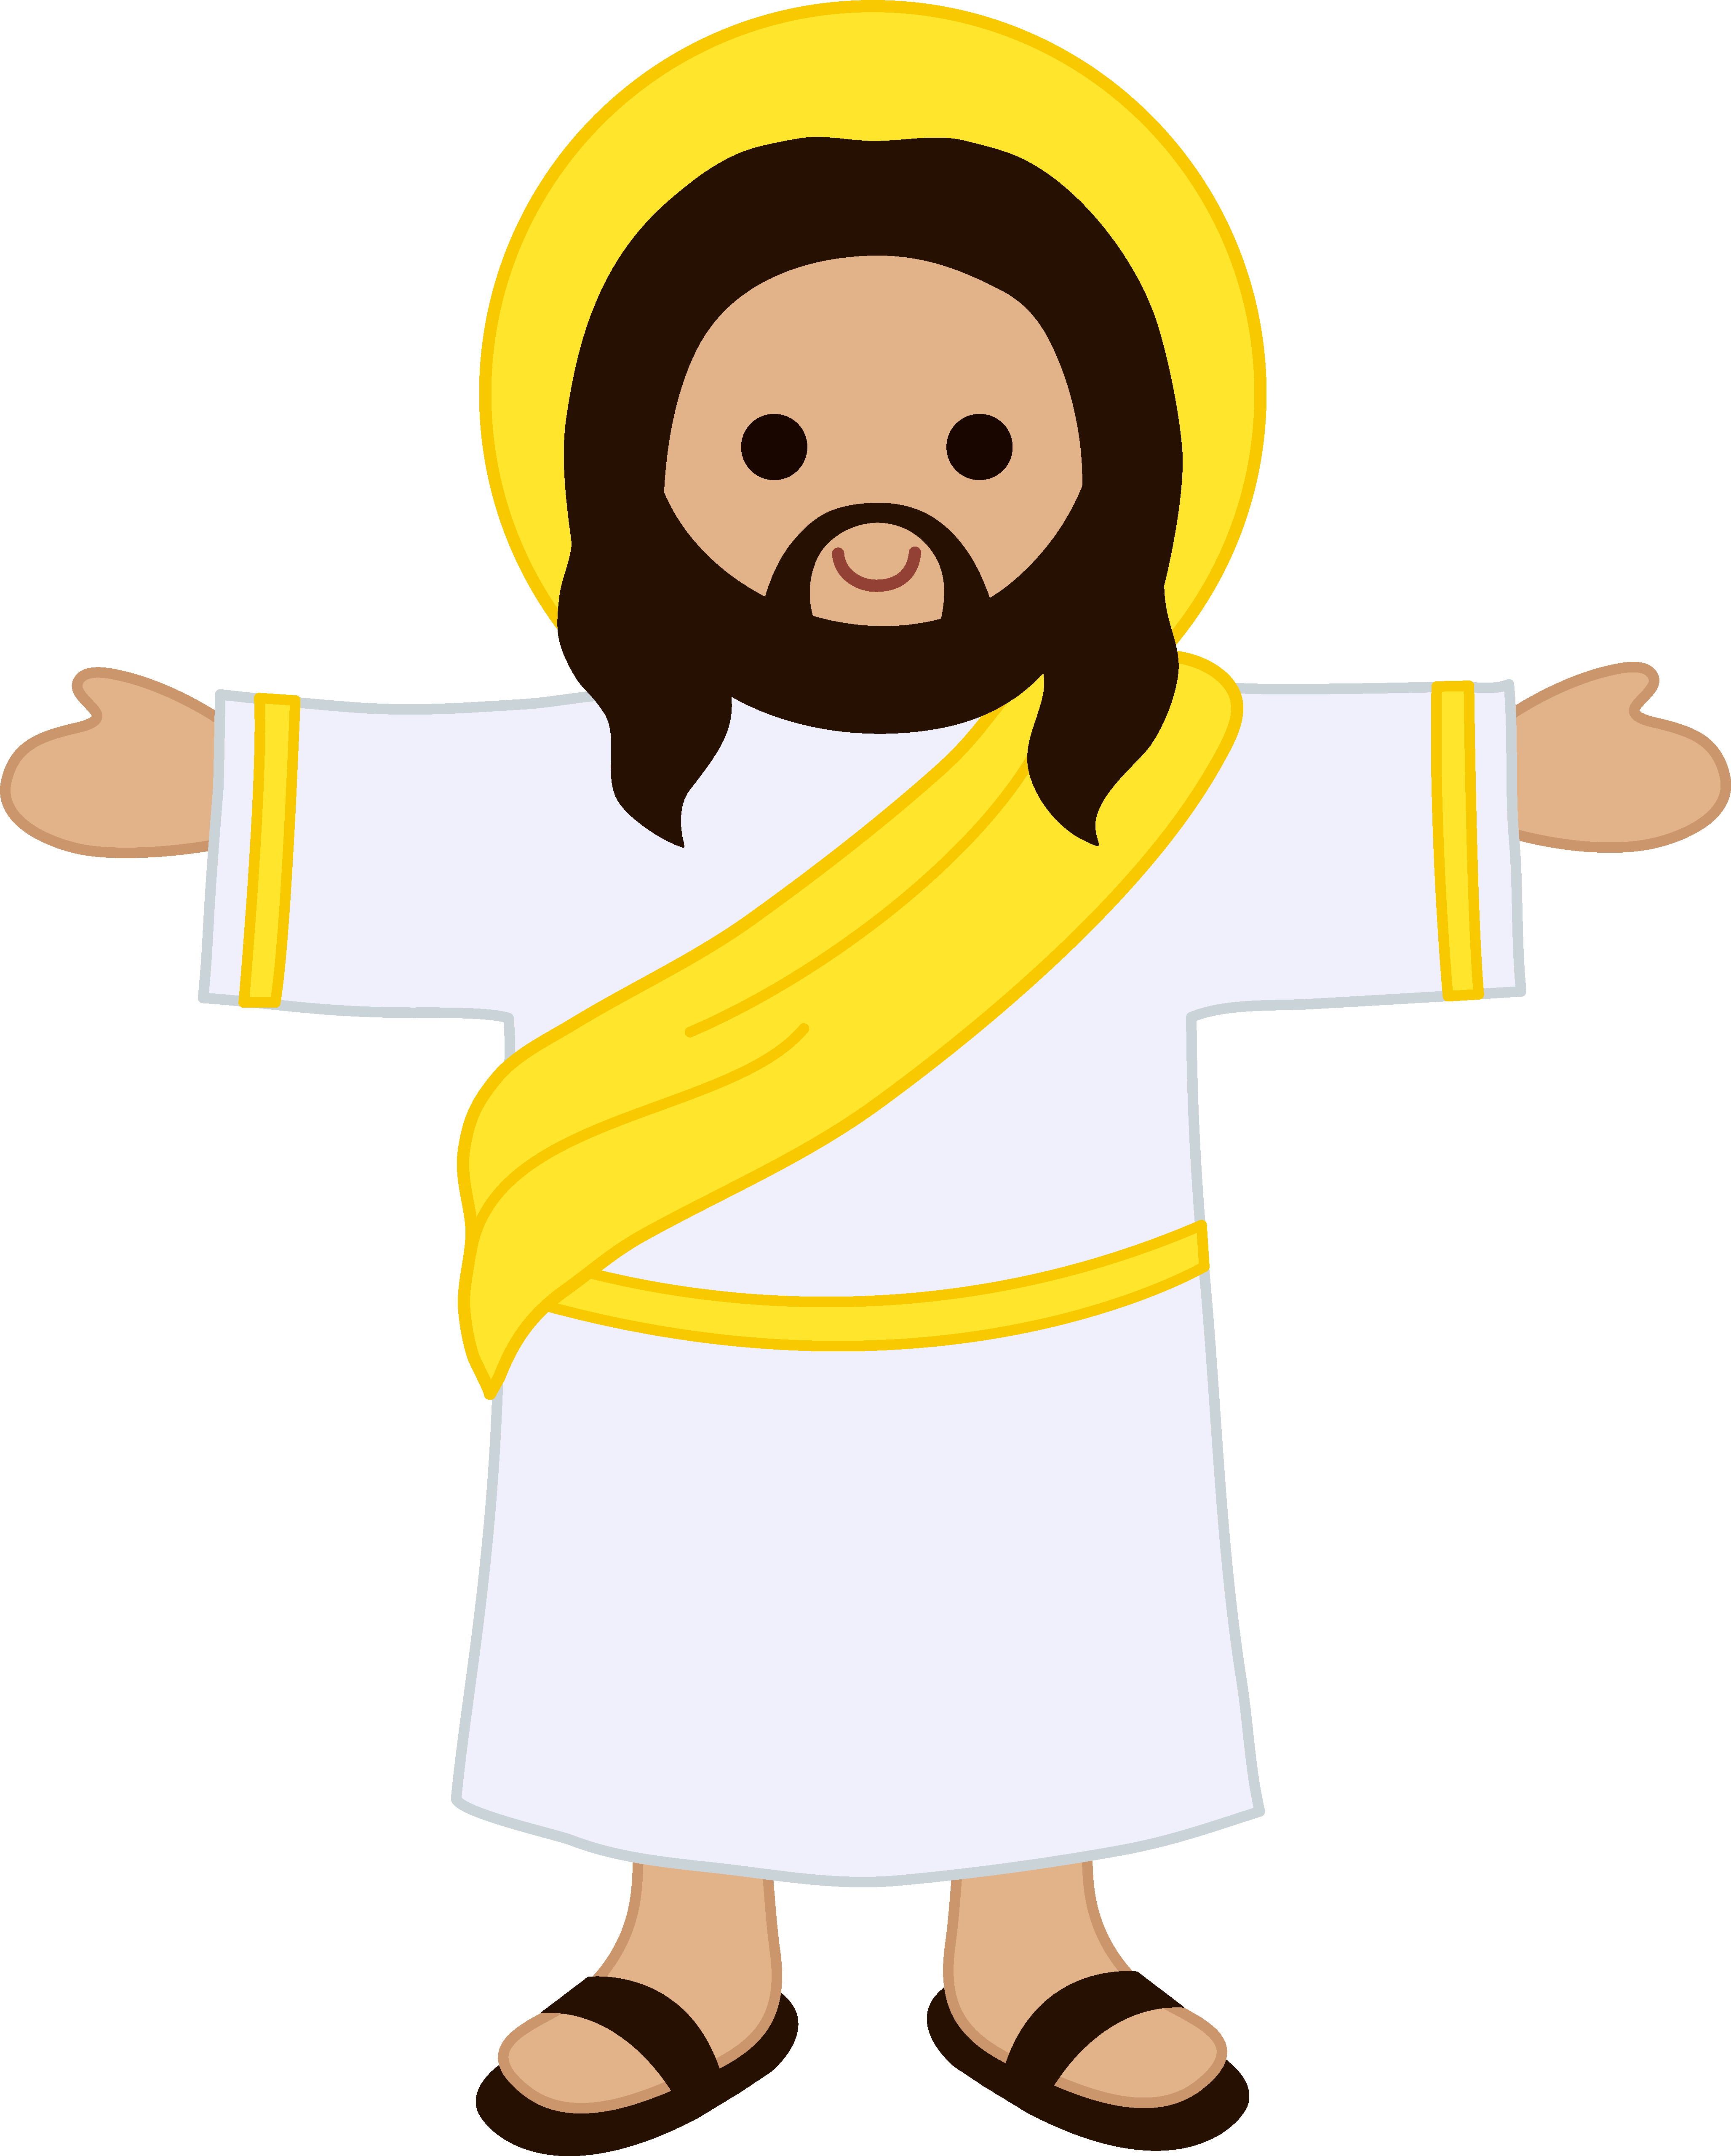 Gods clipart christianity  Jesus clip art Collection